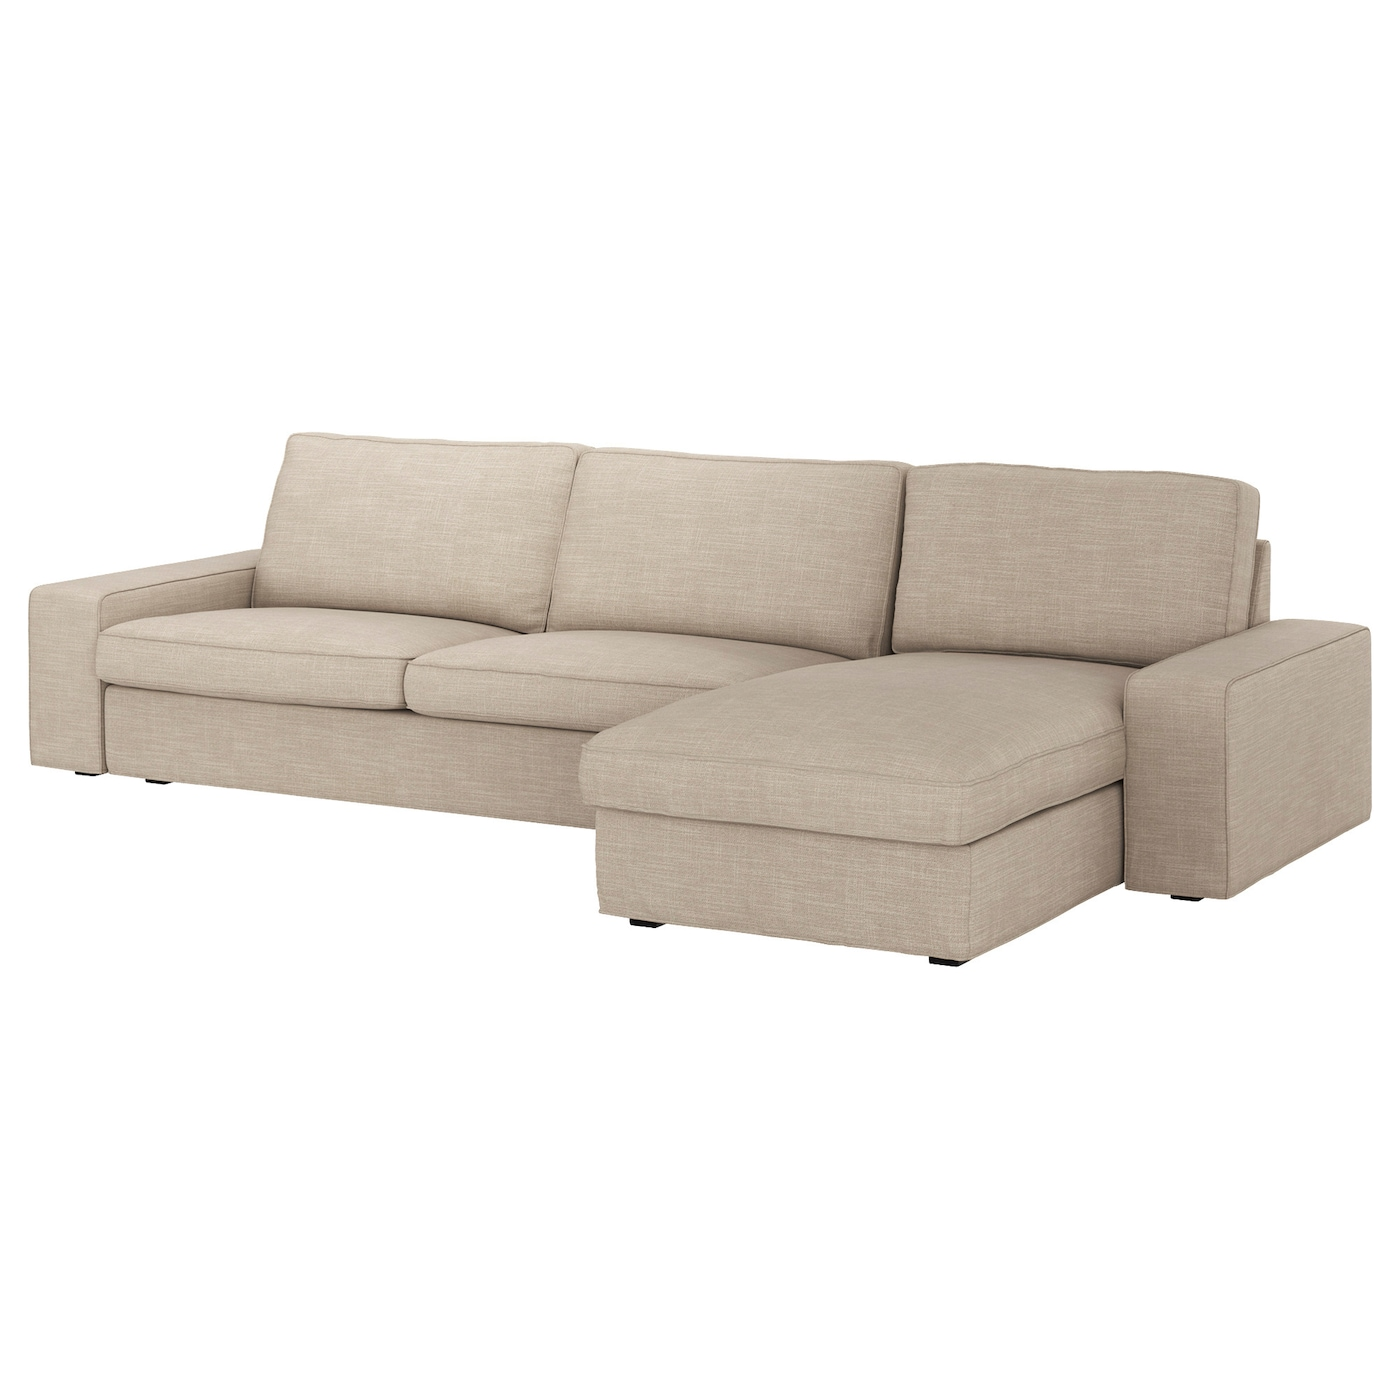 Kivik three seat sofa and chaise longue hillared beige ikea for 3 seat sofa with chaise